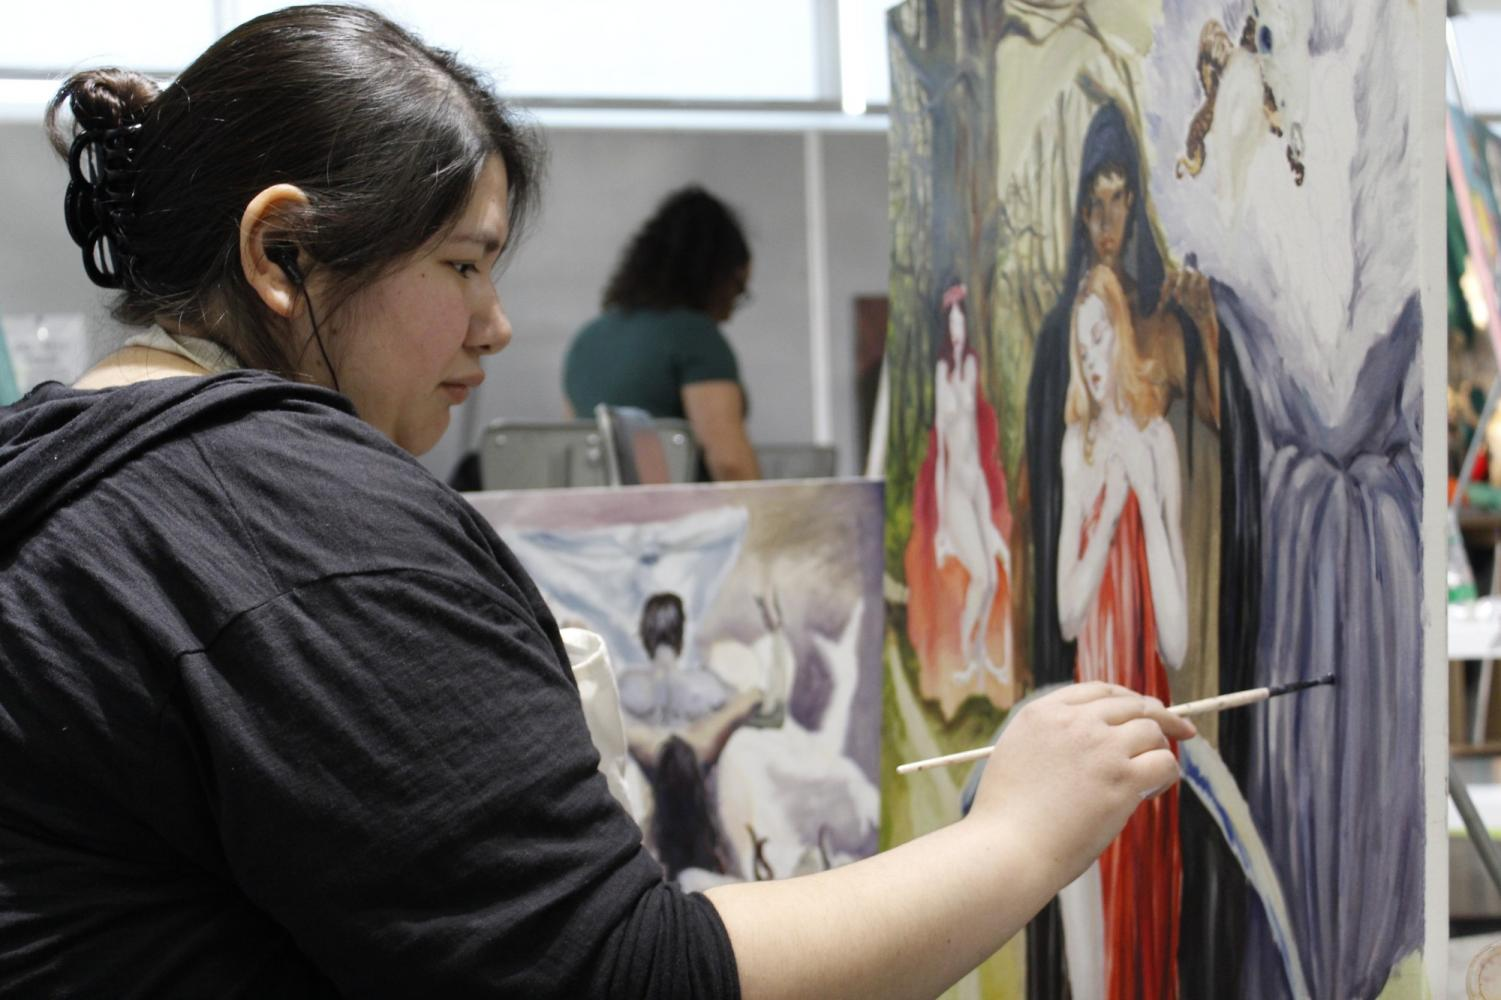 Lisa Naranjo, art major, works on a painting that is part of a series of paintings depicting abuse, relationships, over-sexualization and liberation of women.